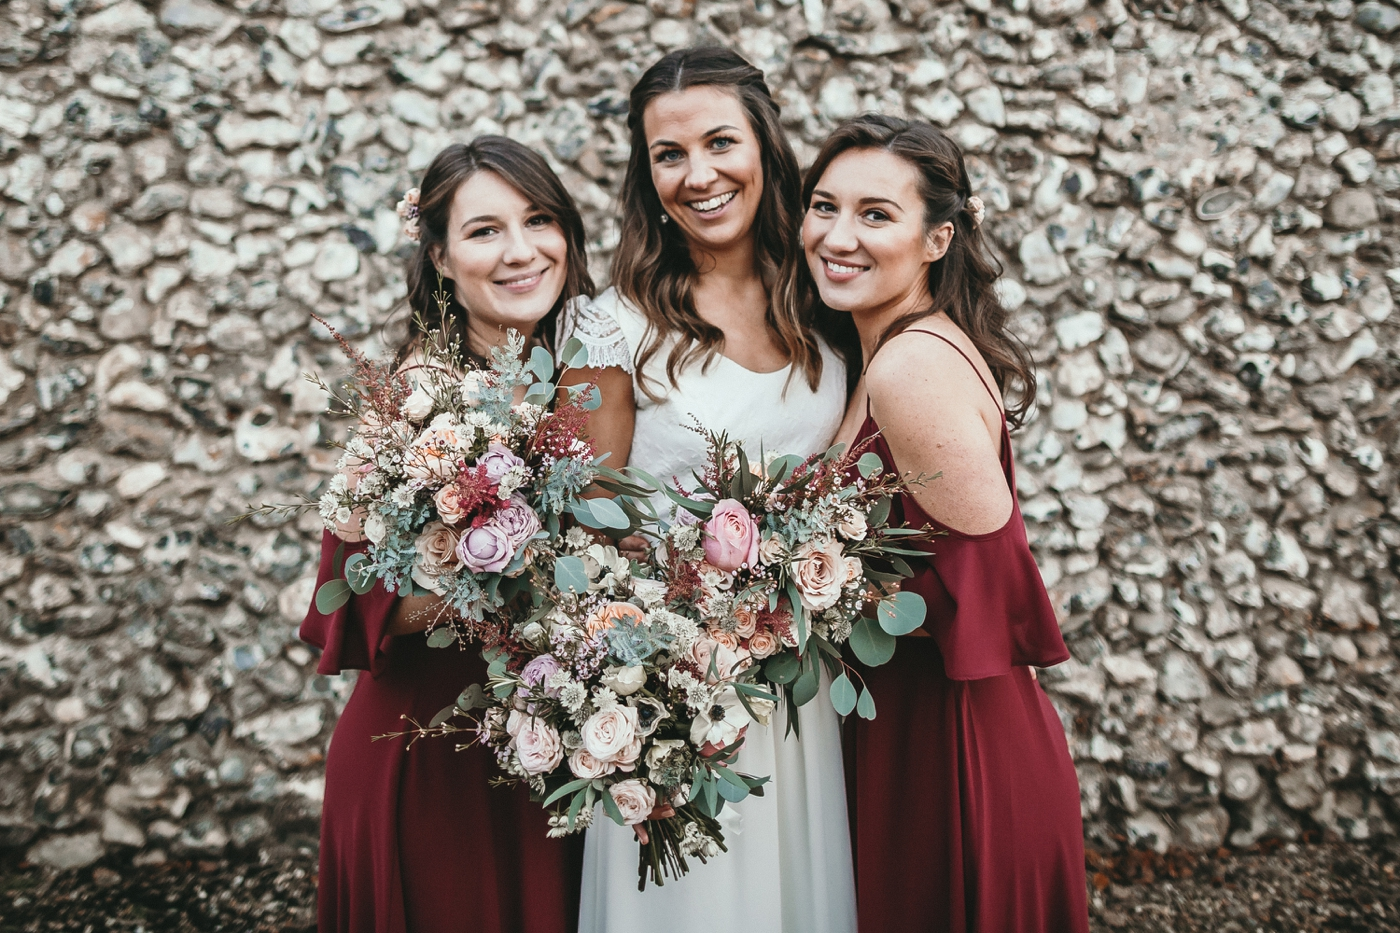 Rewritten bridesmaids dresses for a stylish wedding at sussex barn rewritten bridesmaids dresses cold shoulder bridesmaids dresses ombrellifo Images